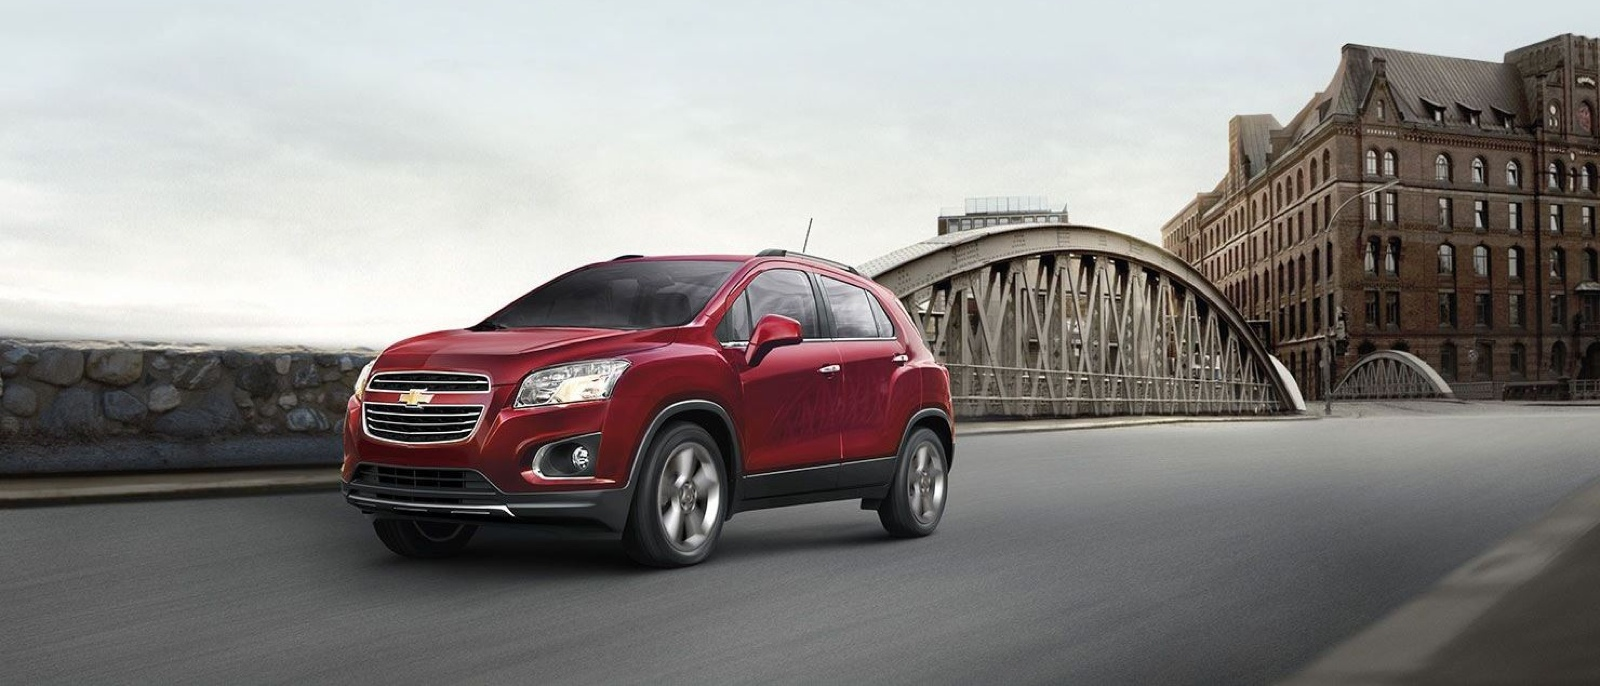 2015 Chevy Trax: Getting to Know GM's New Crossover